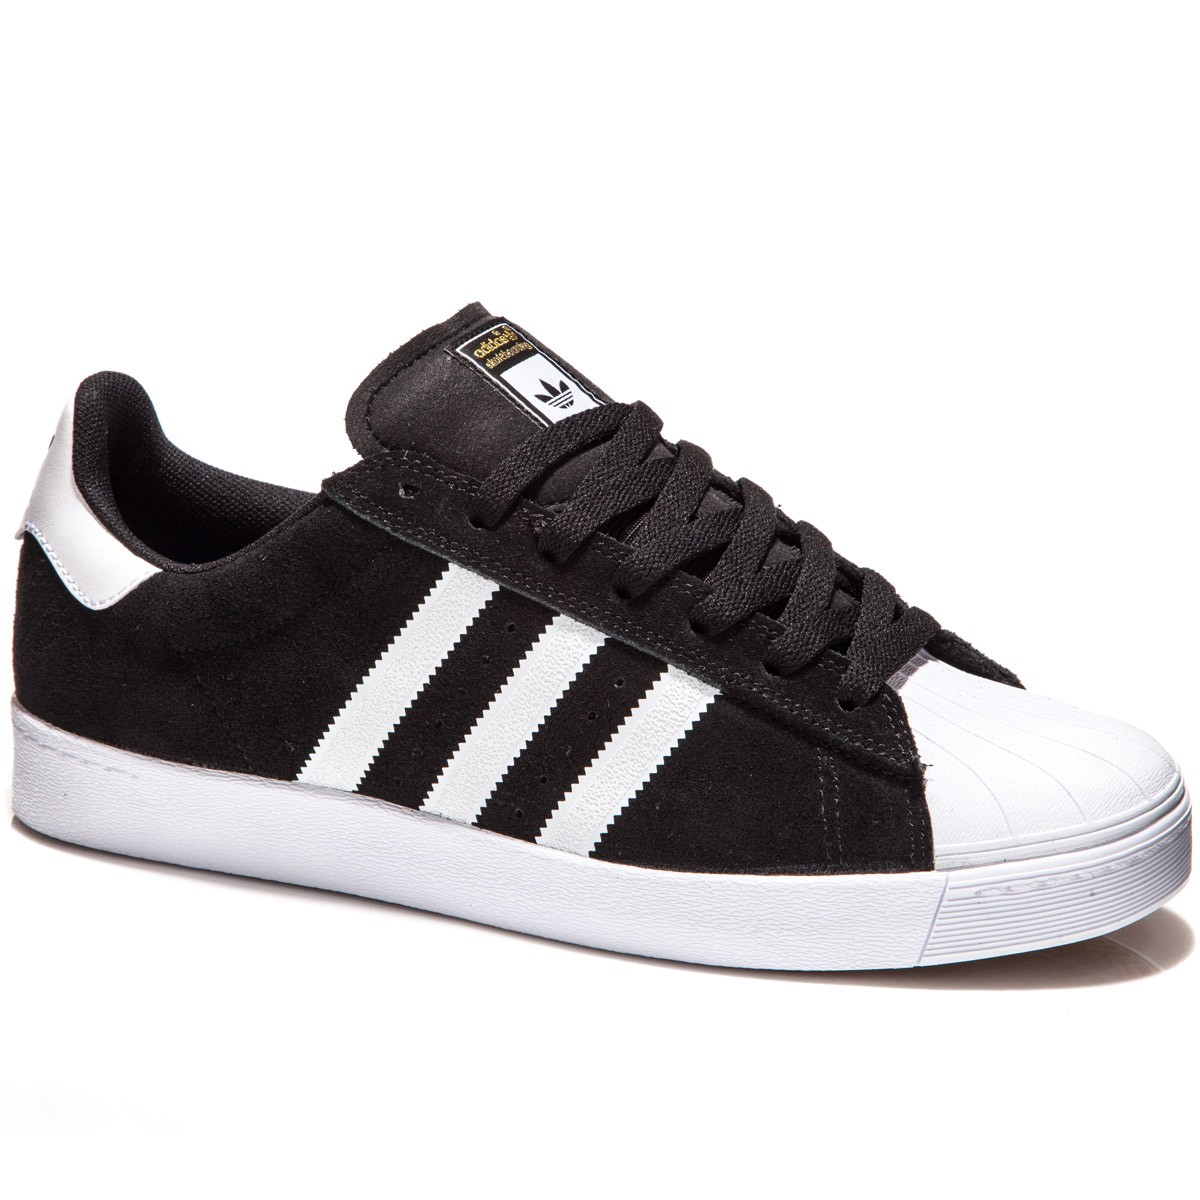 adidas superstar vulc